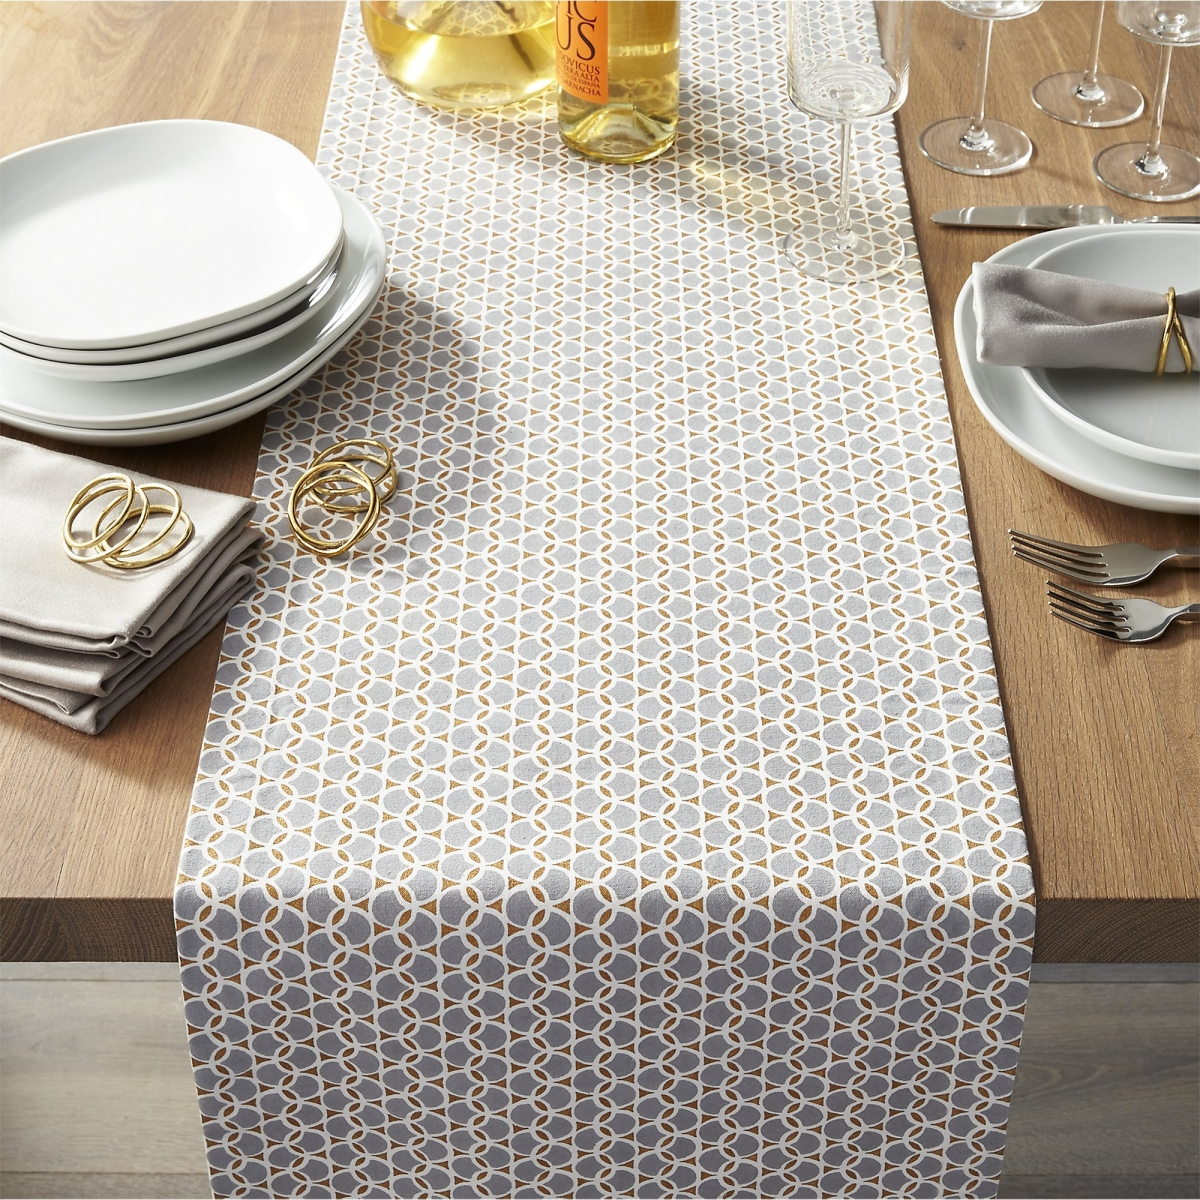 The Hunt for the Perfect Table Runner : Geometric table runner from Crate Barrel from www.decoist.com size 1200 x 1200 jpeg 1348kB